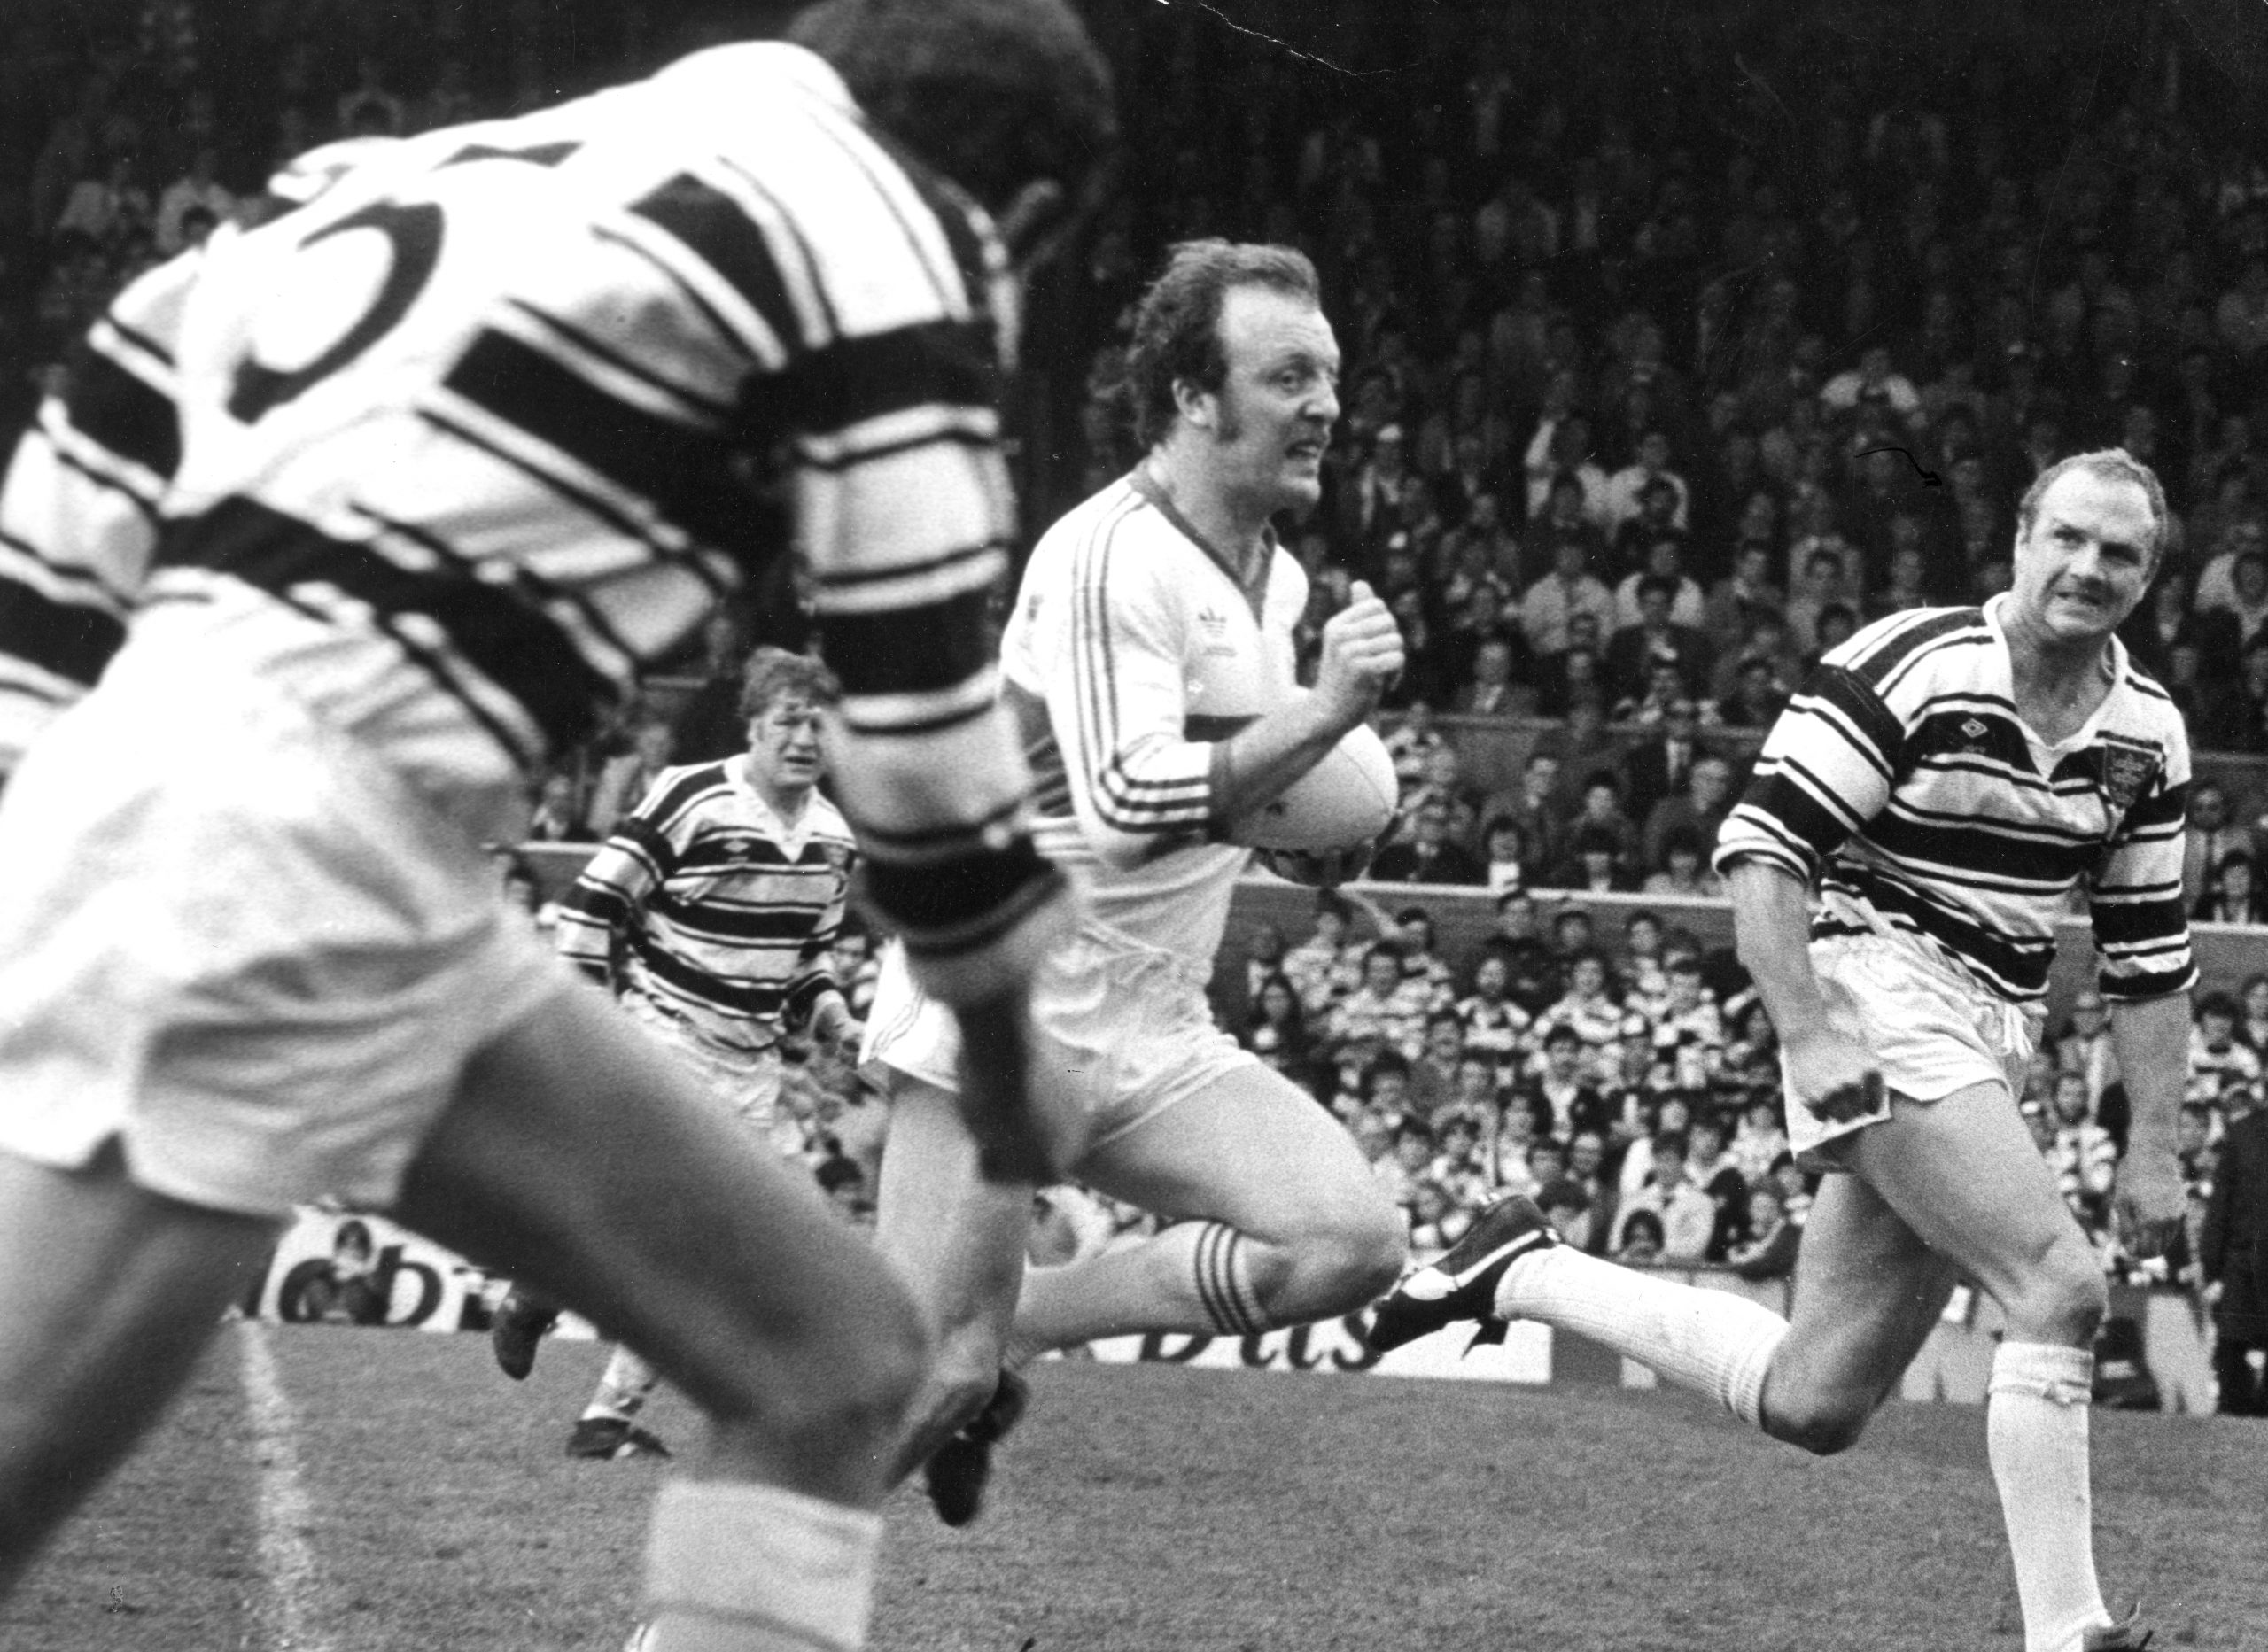 Hartley bursting through the Hull FC defence in the 1981 Premiership Final